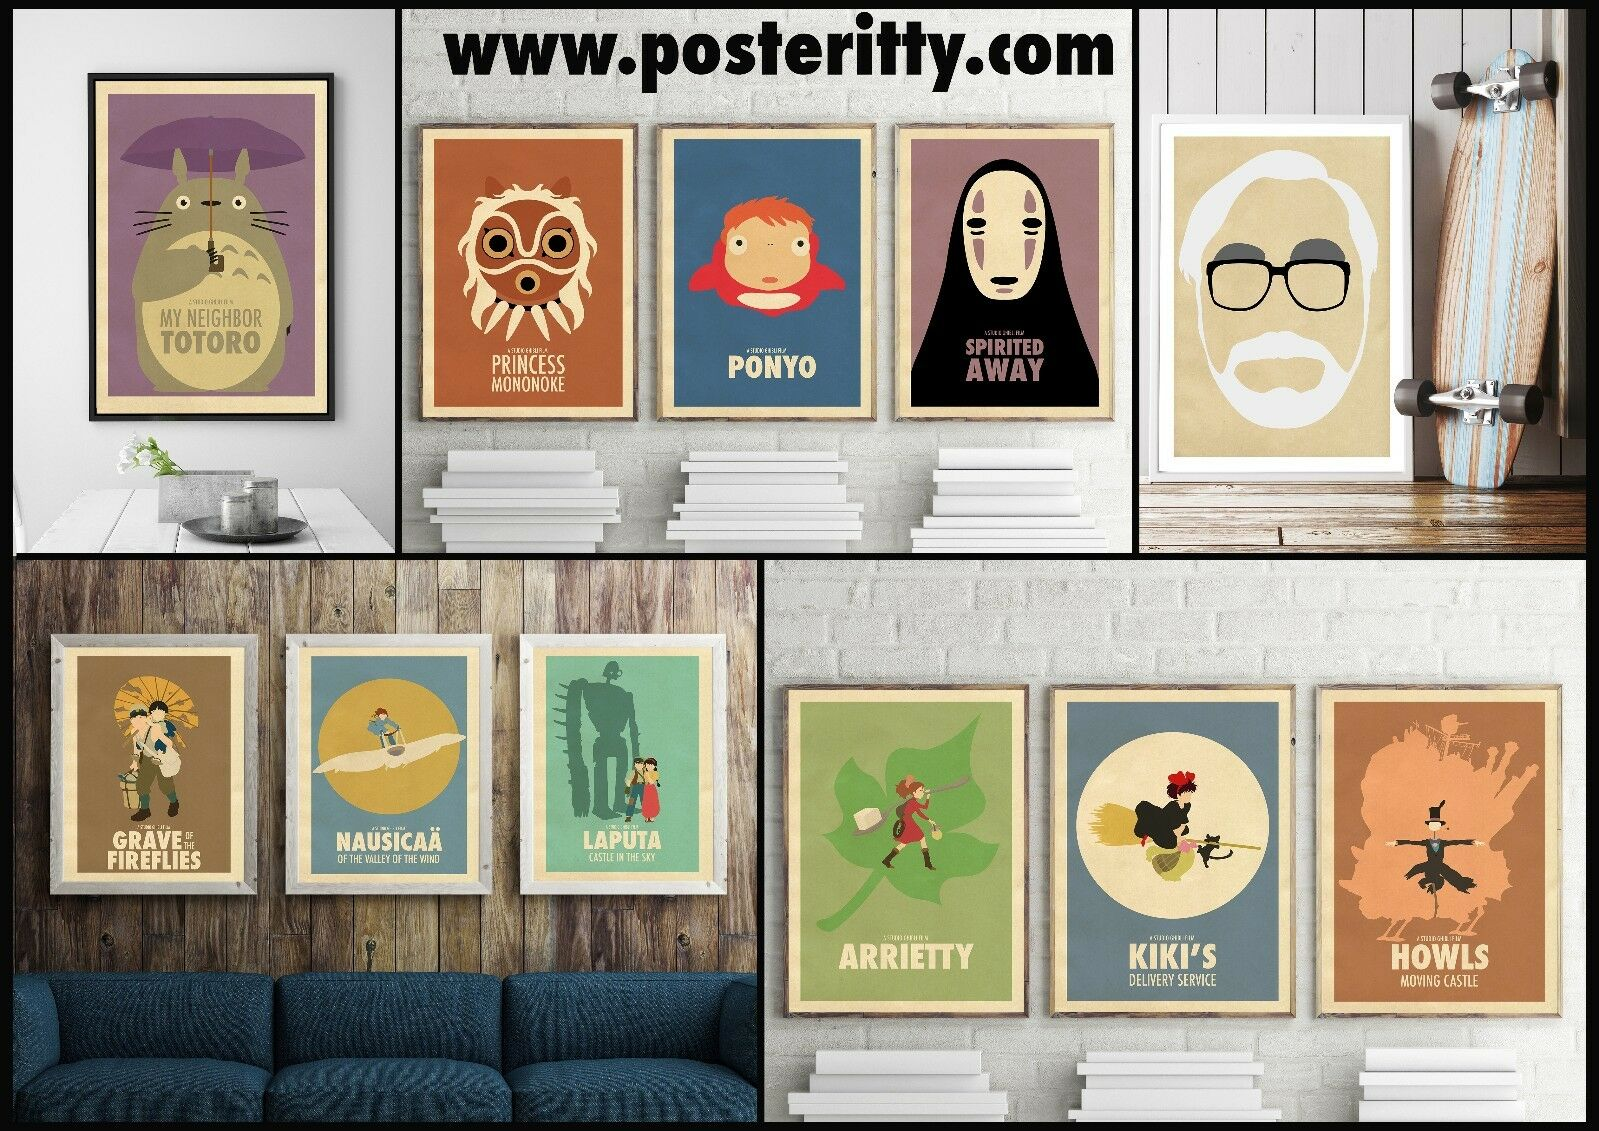 studio ghibli minimalist movie poster collection minimal art by posteritty eur 4 51. Black Bedroom Furniture Sets. Home Design Ideas